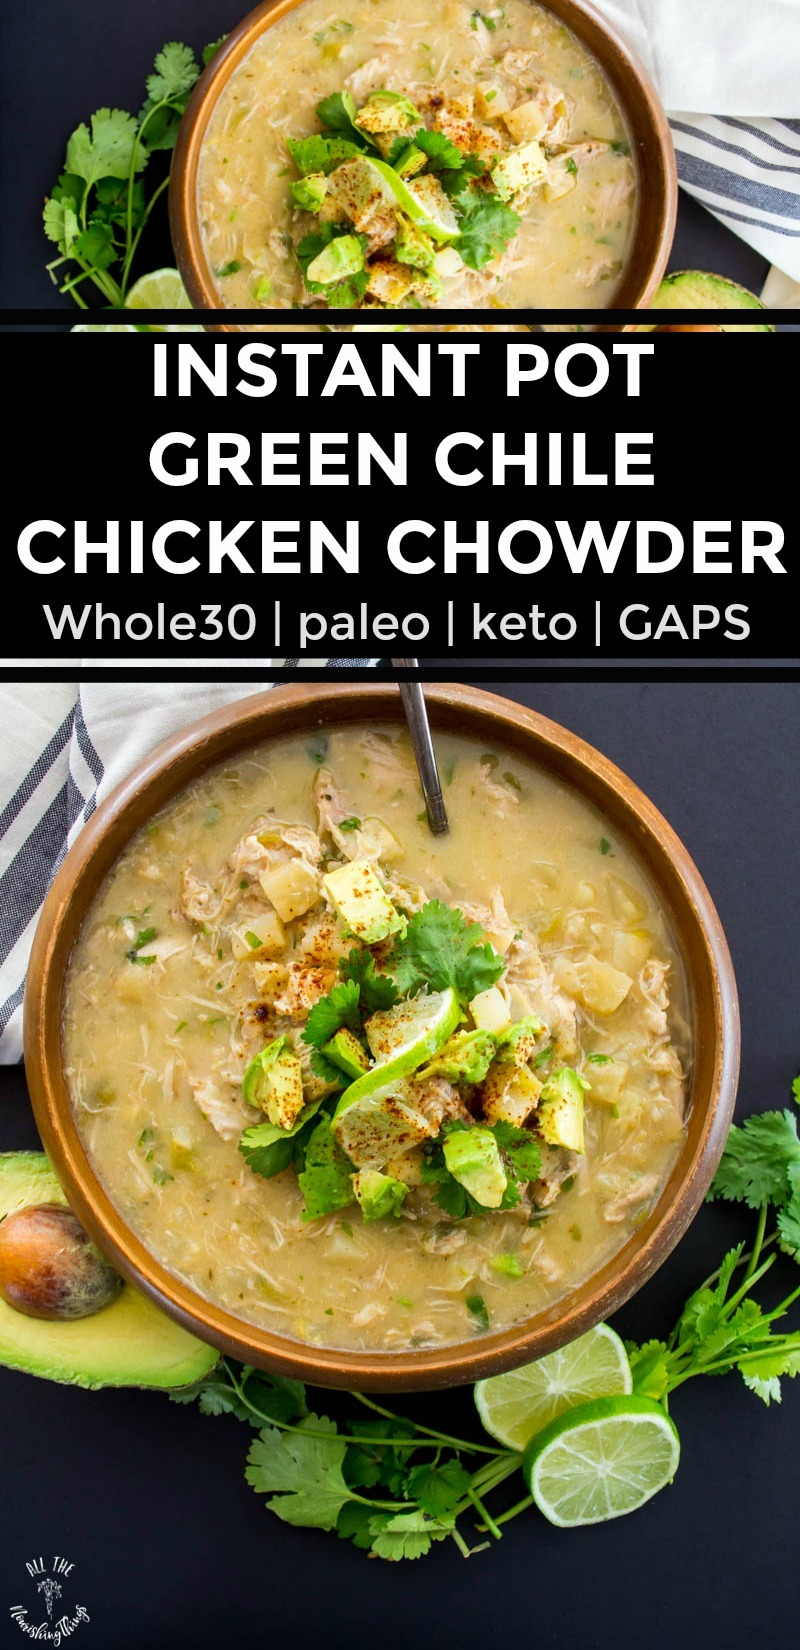 collage of 2 images of instant pot green chile chicken chowder in a wooden bowl with text overlay between the images